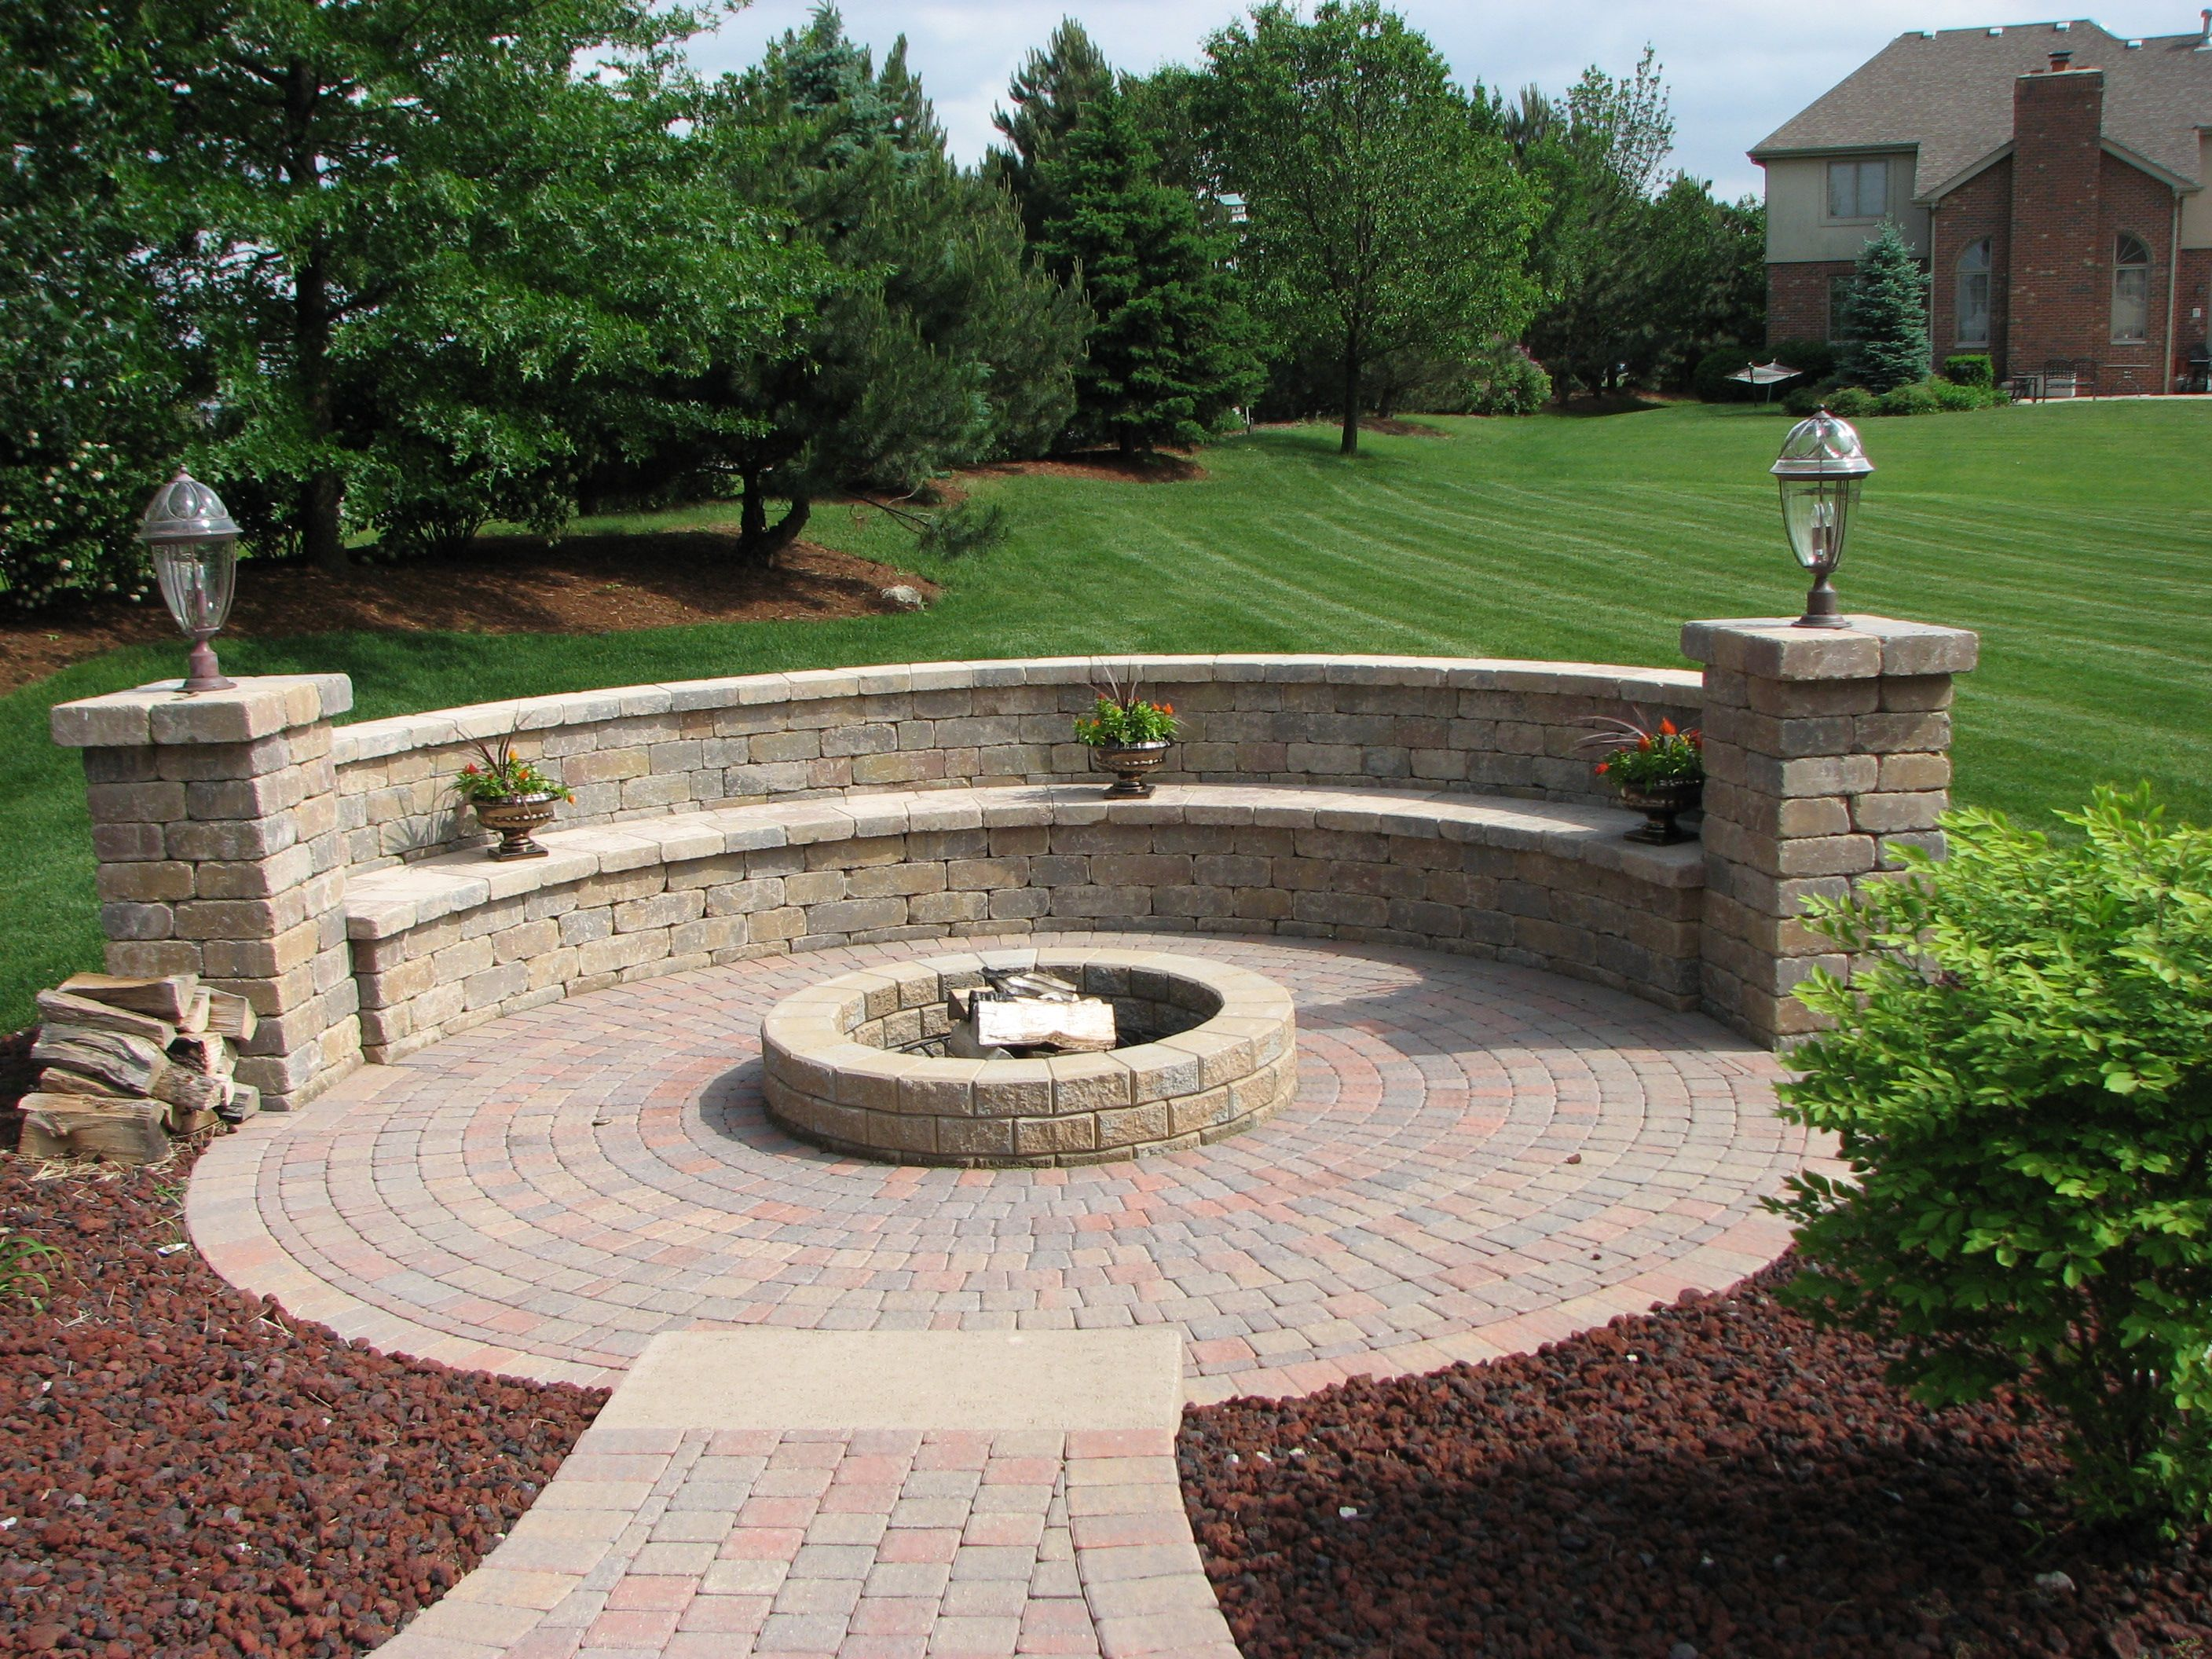 Inspiration for backyard fire pit designs round fire pit for Backyard rock fire pit ideas